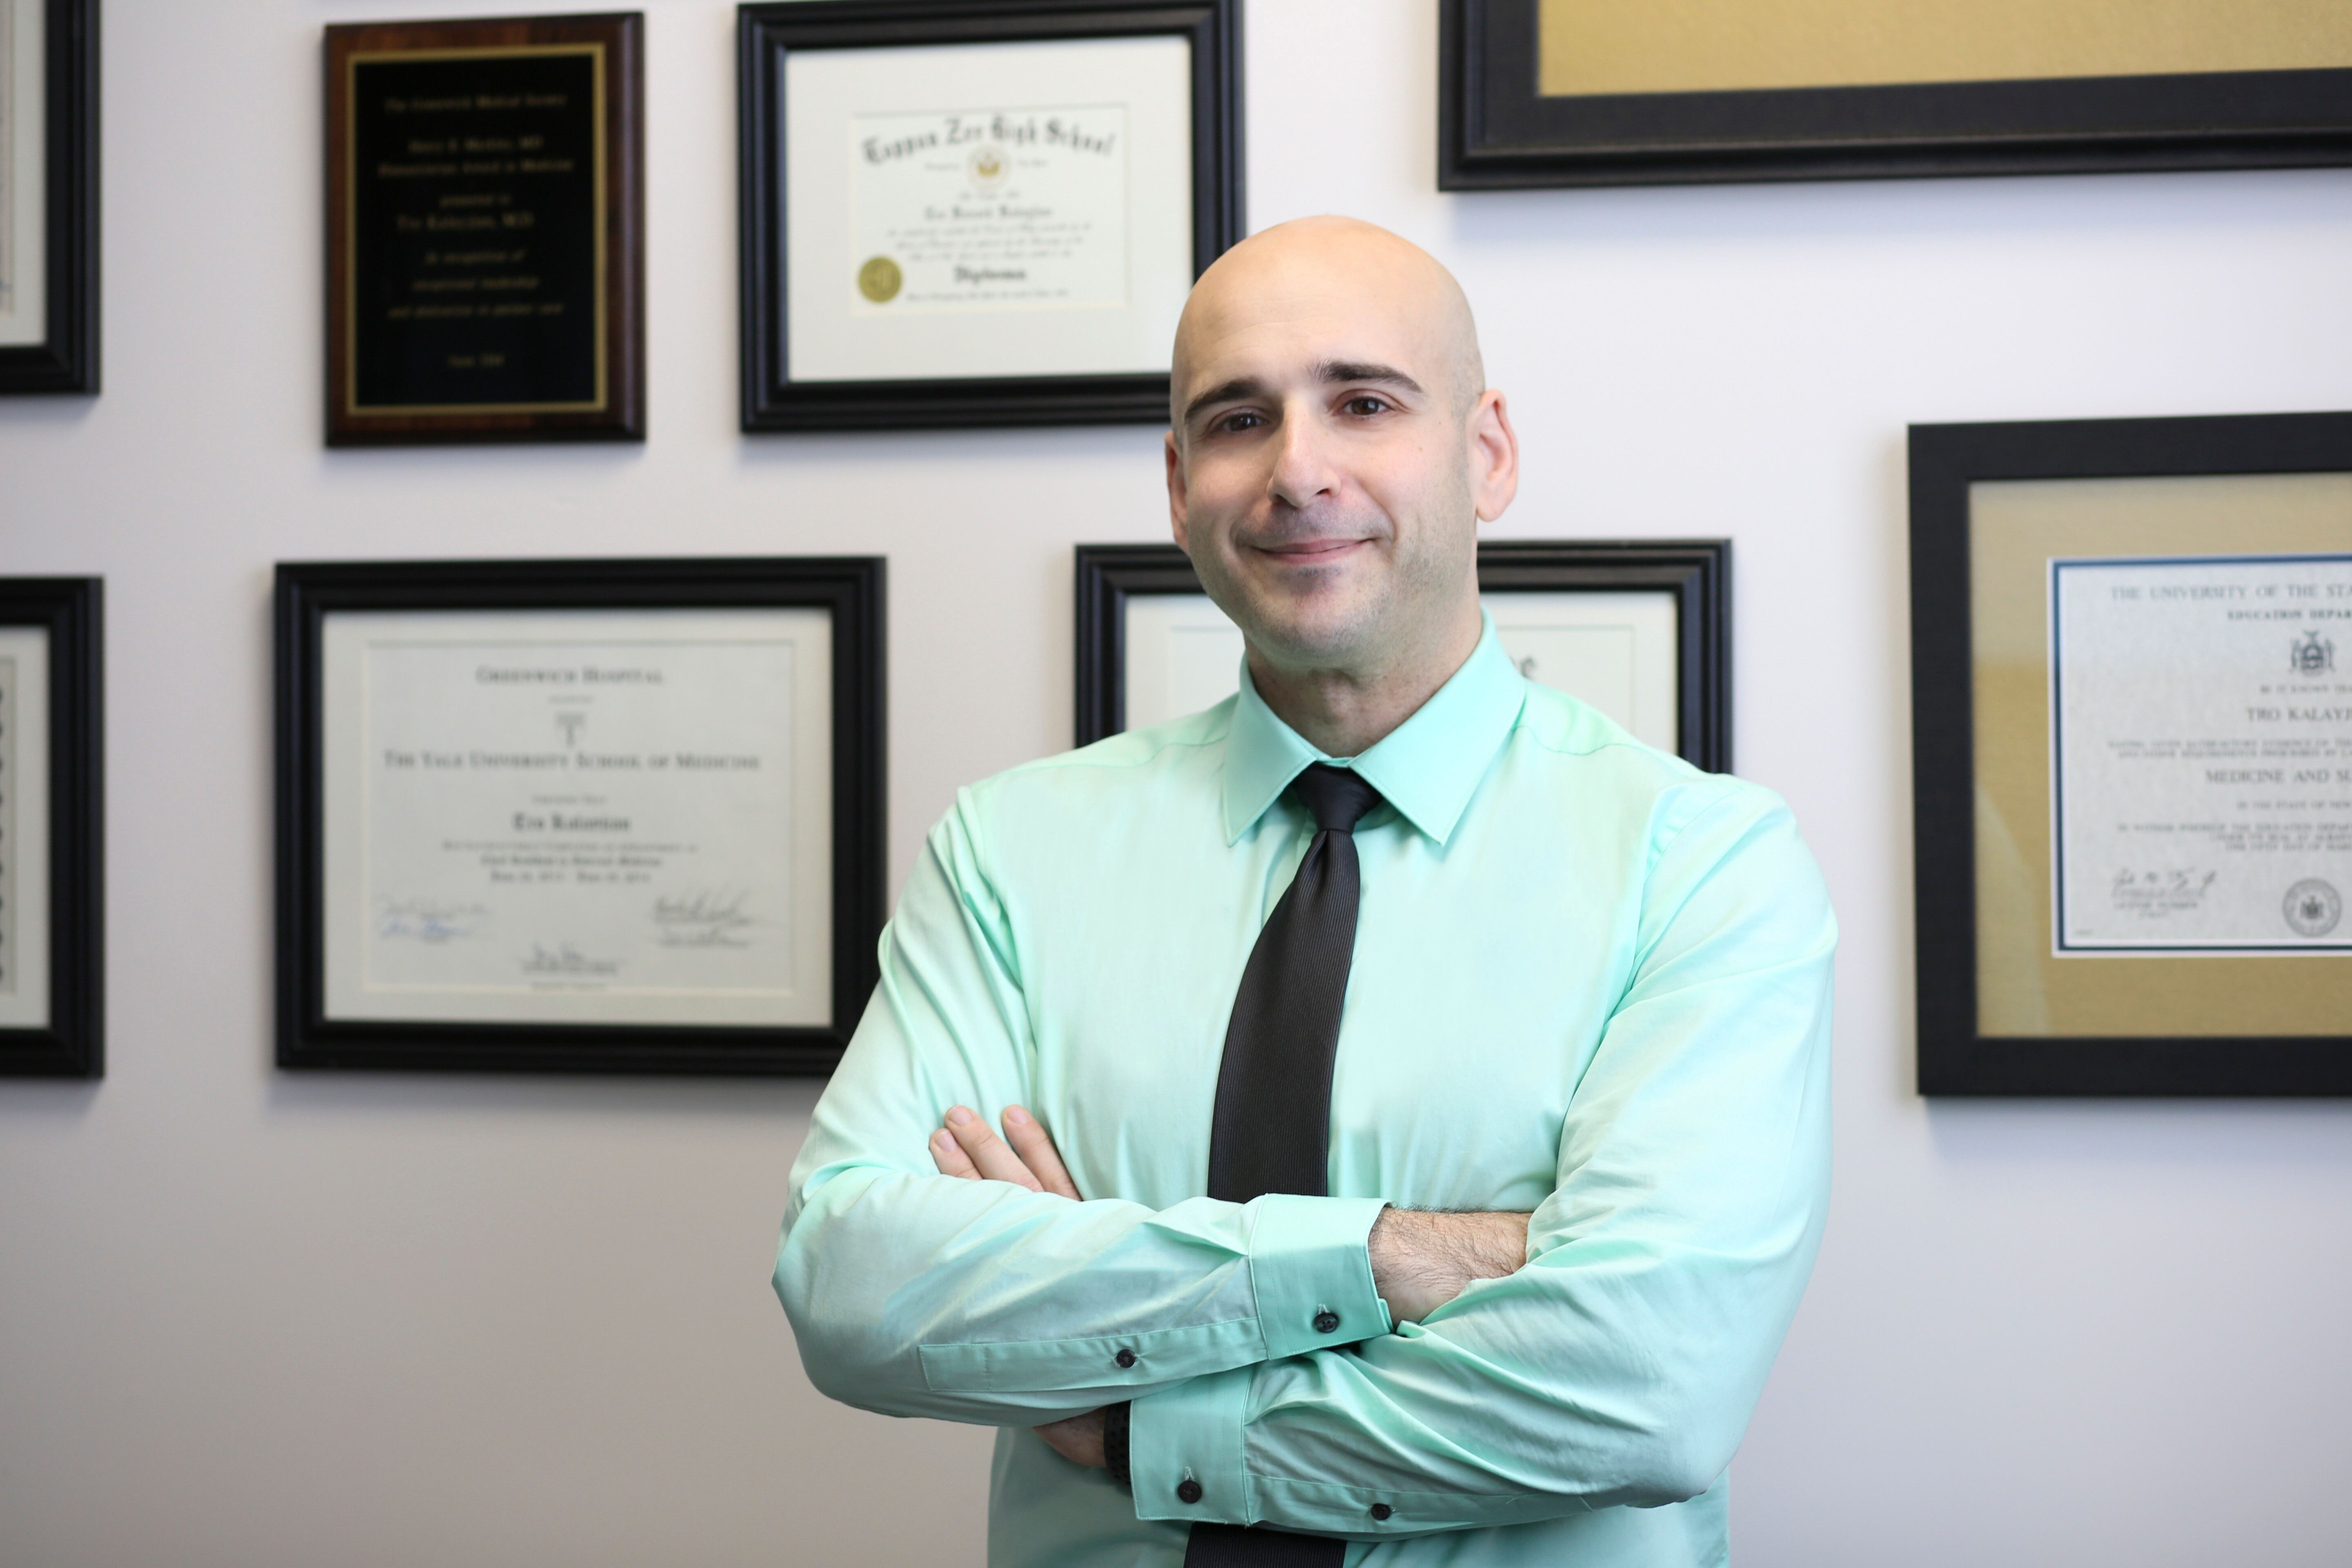 Dr. Tro Kalayjian has added group coaching to the list of services offered by his practice, located in Tappan, NY.